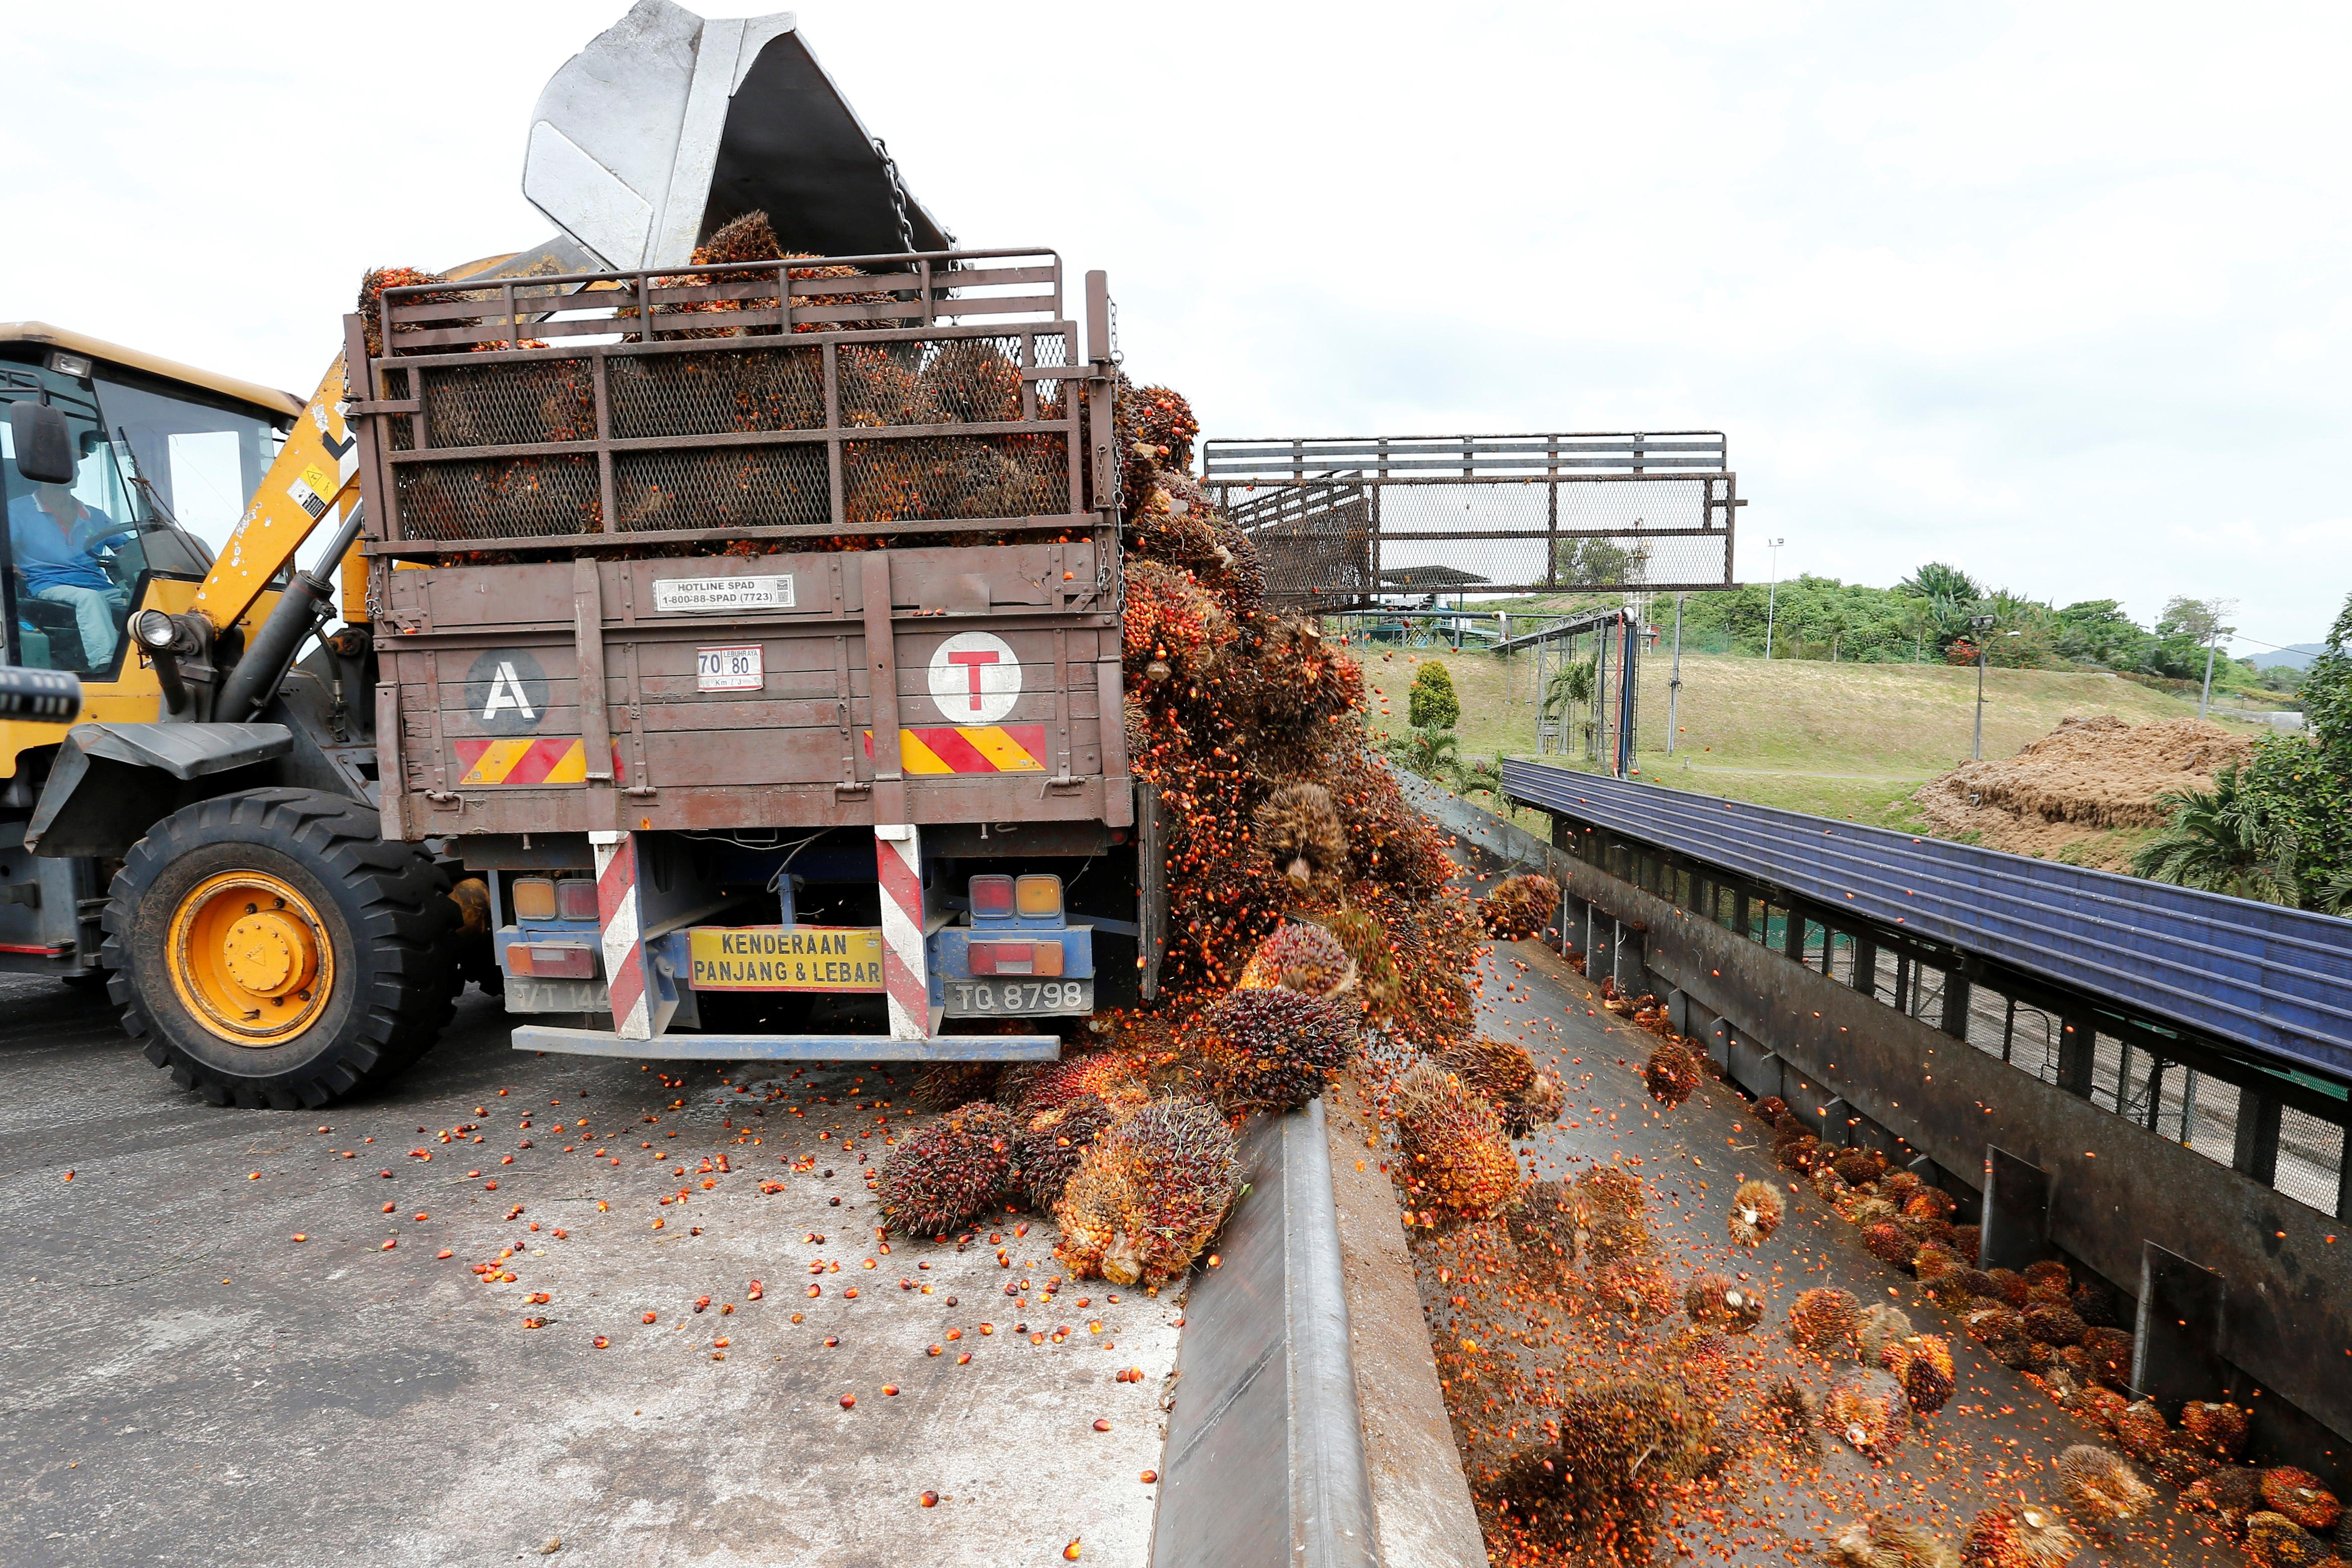 Malaysia to cut export duties for crude palm oil in 2020